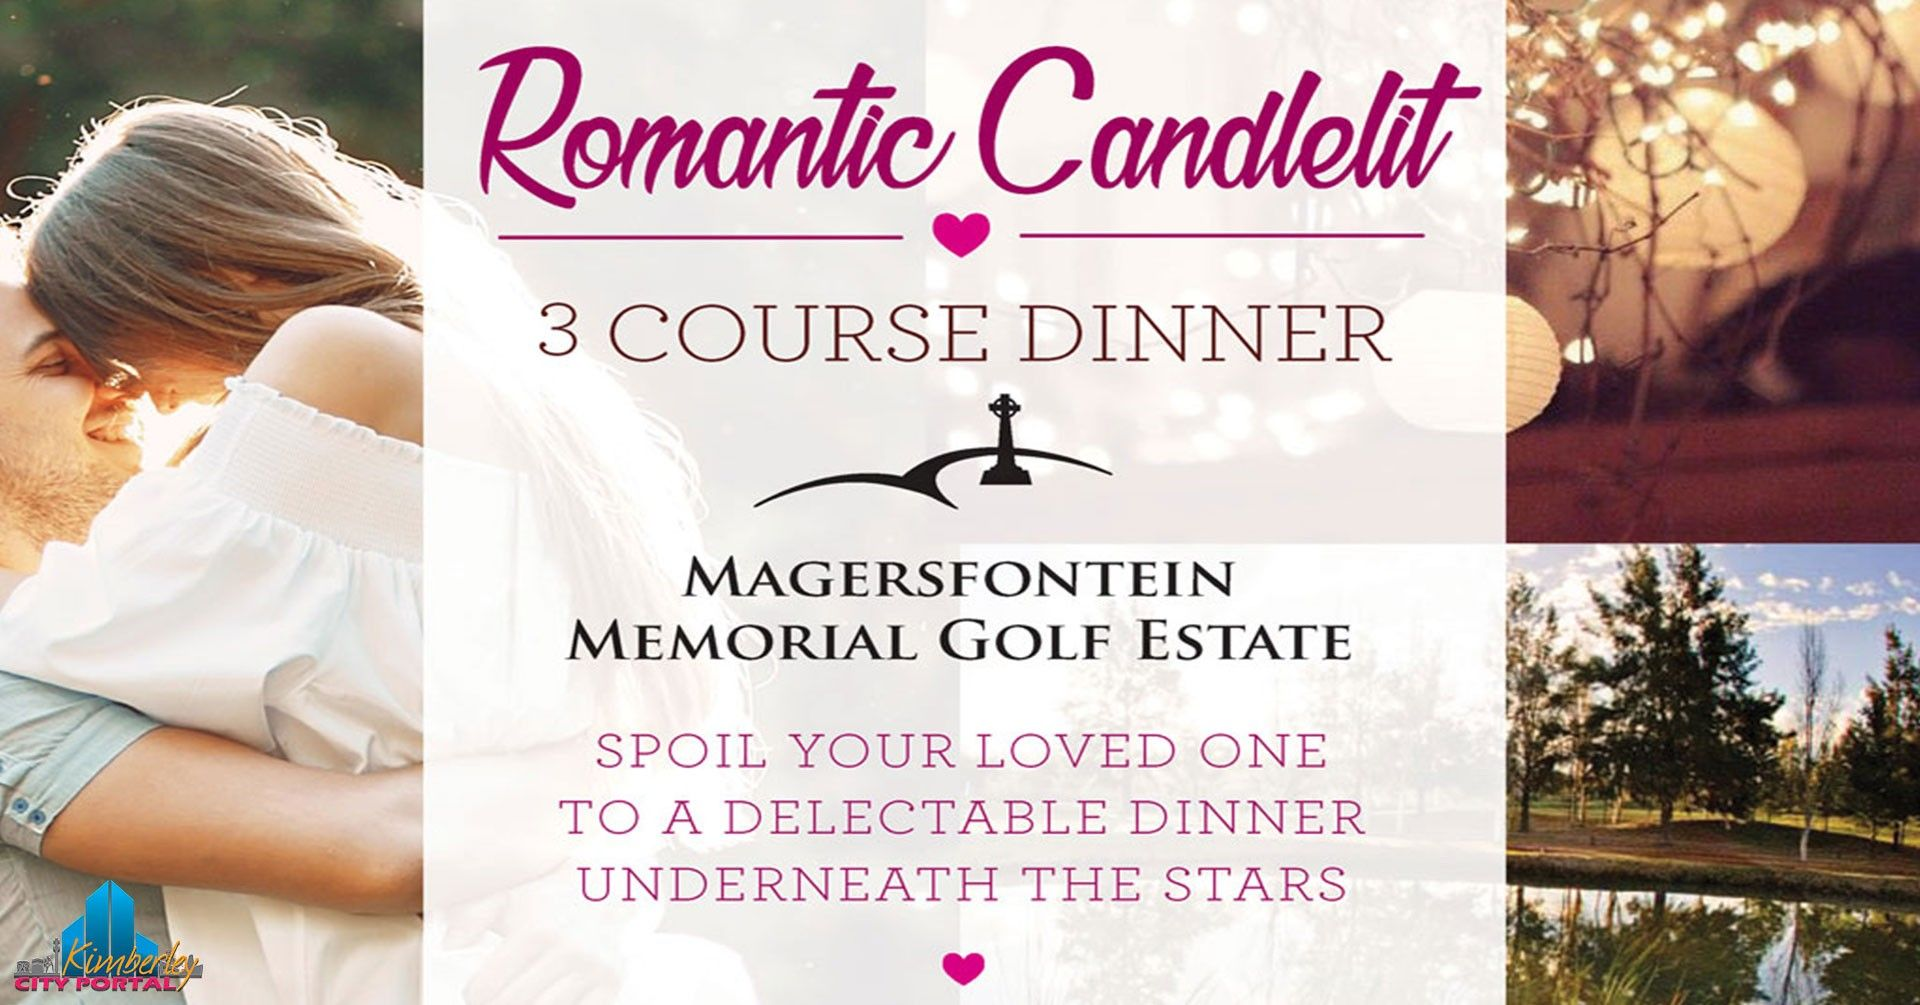 Valentines Day MMGE http//www.kimberley.co.za/events